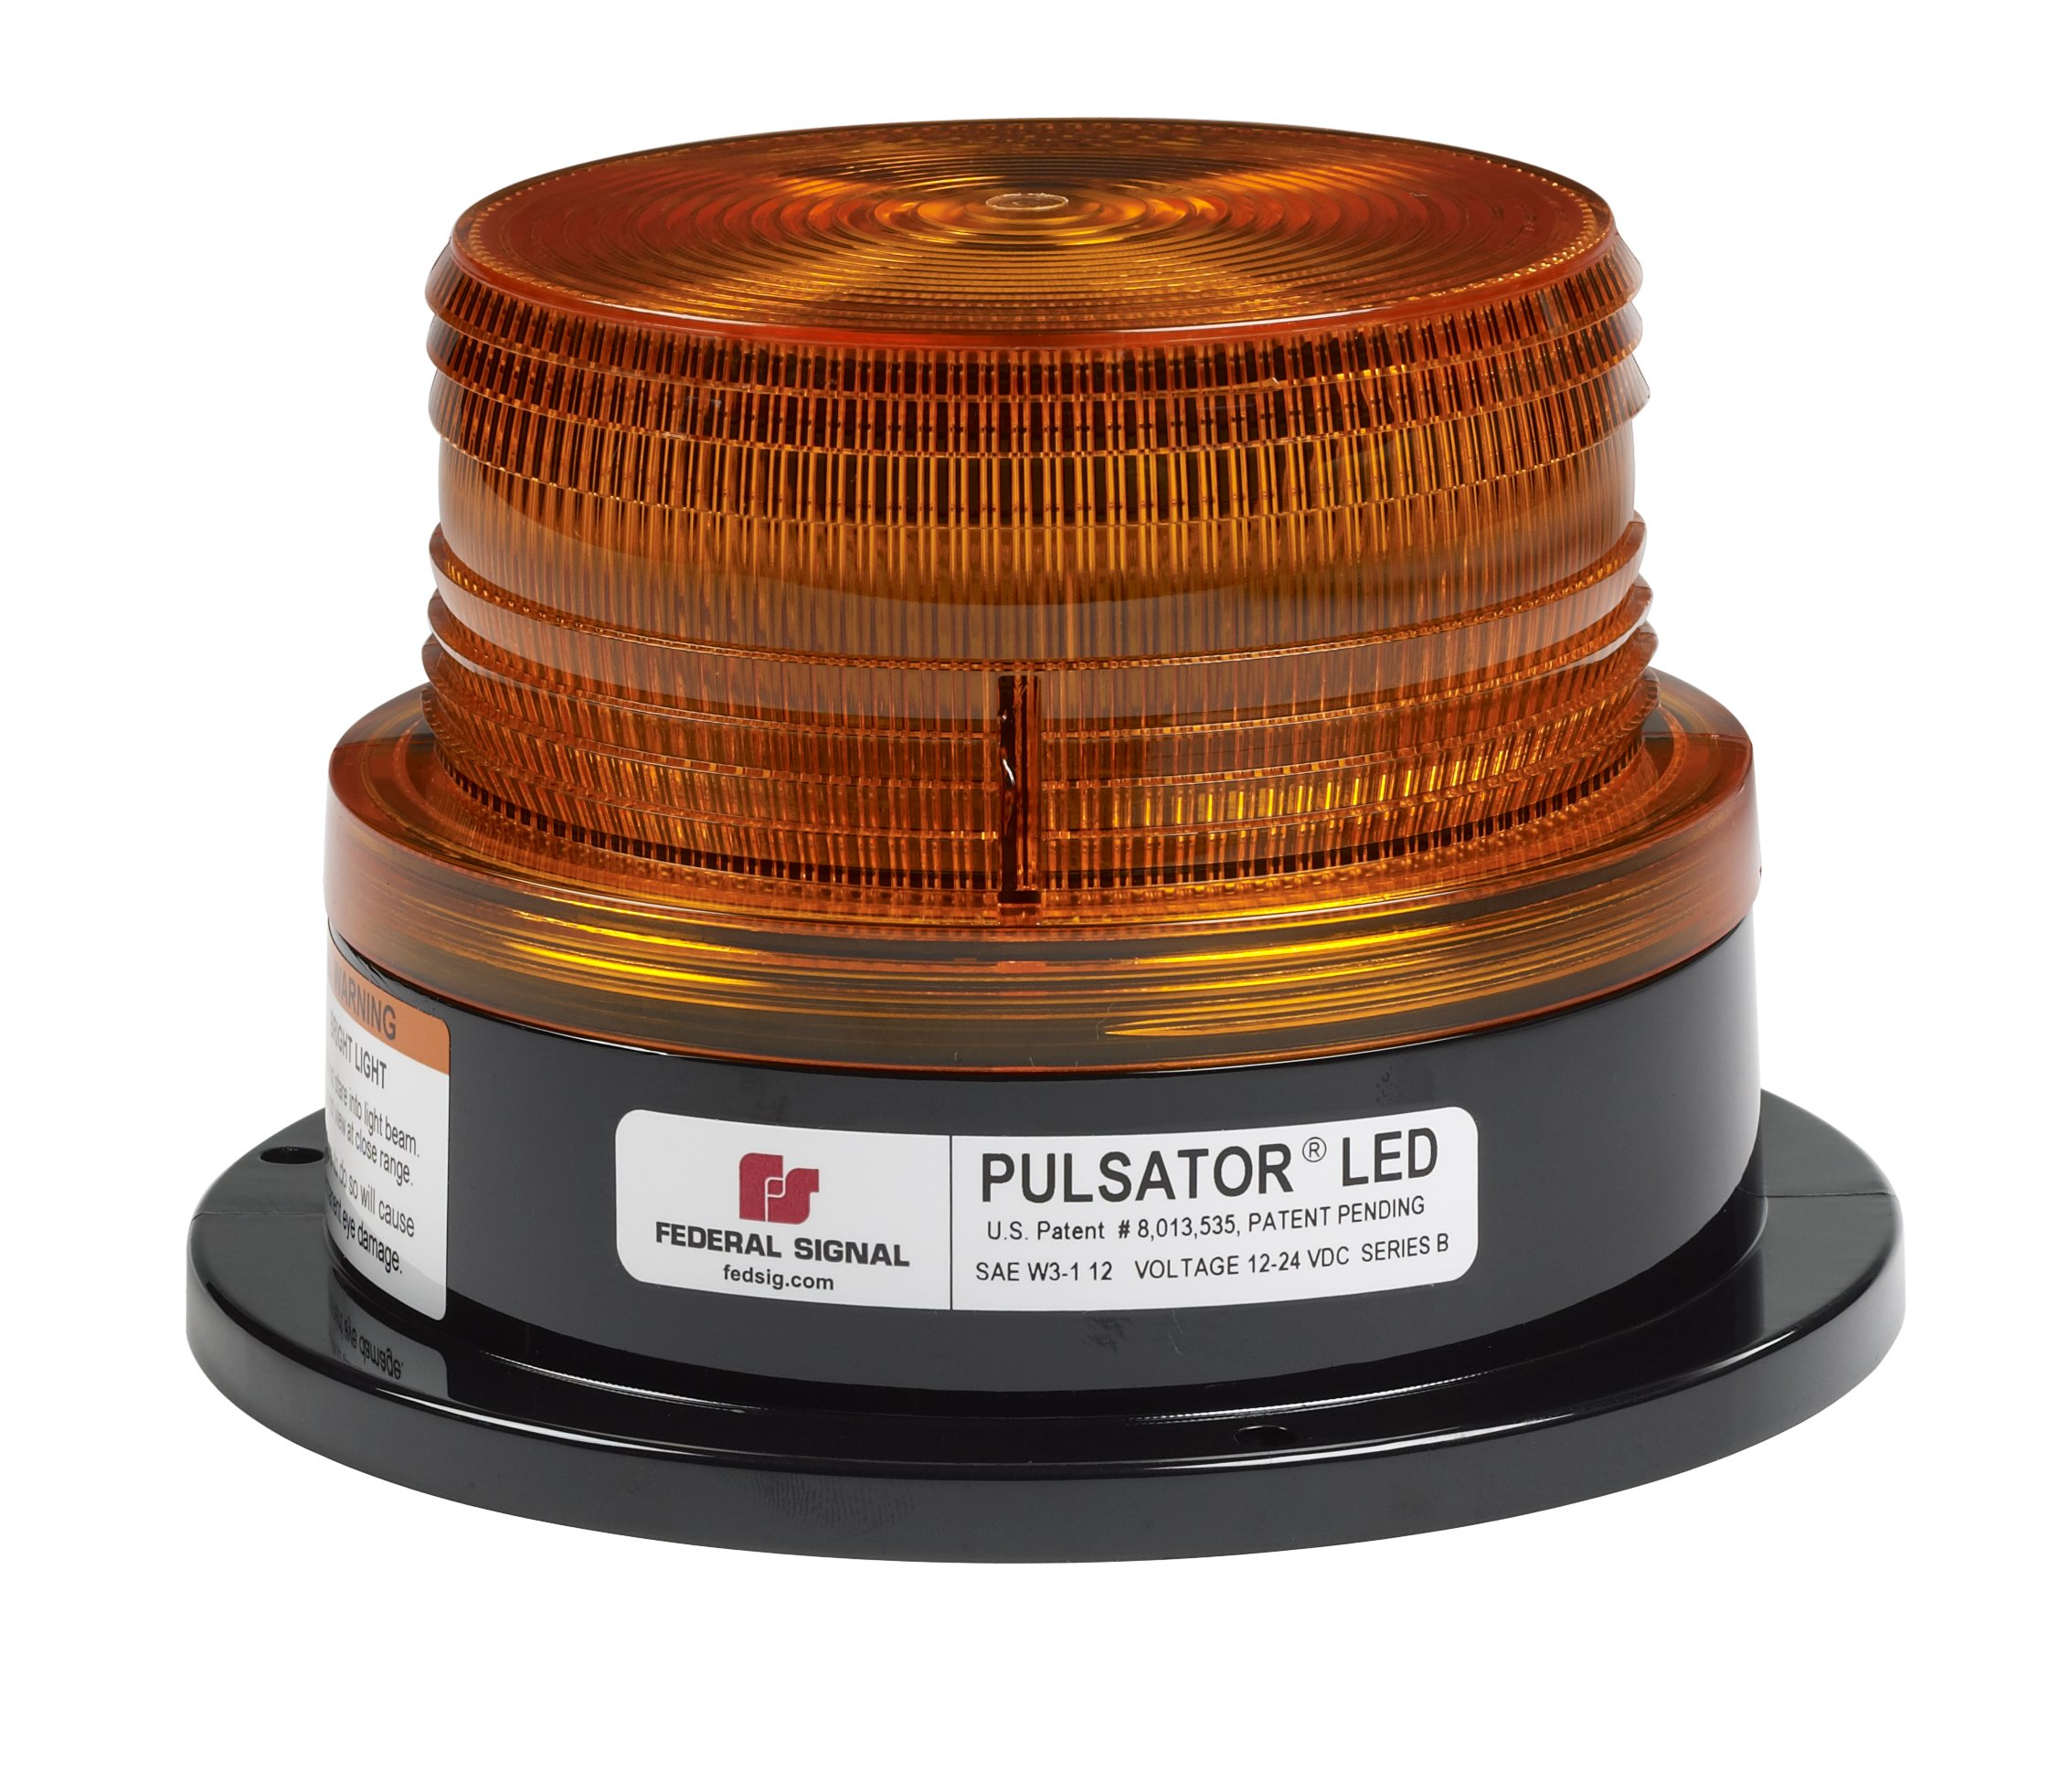 Federal Signal 212674-02SB Class 2 Pulsator 451 LED Beacon, Suction-Cup Magnetic Mount with Cigarette Plug, Short Dome, Amber by Federal Signal